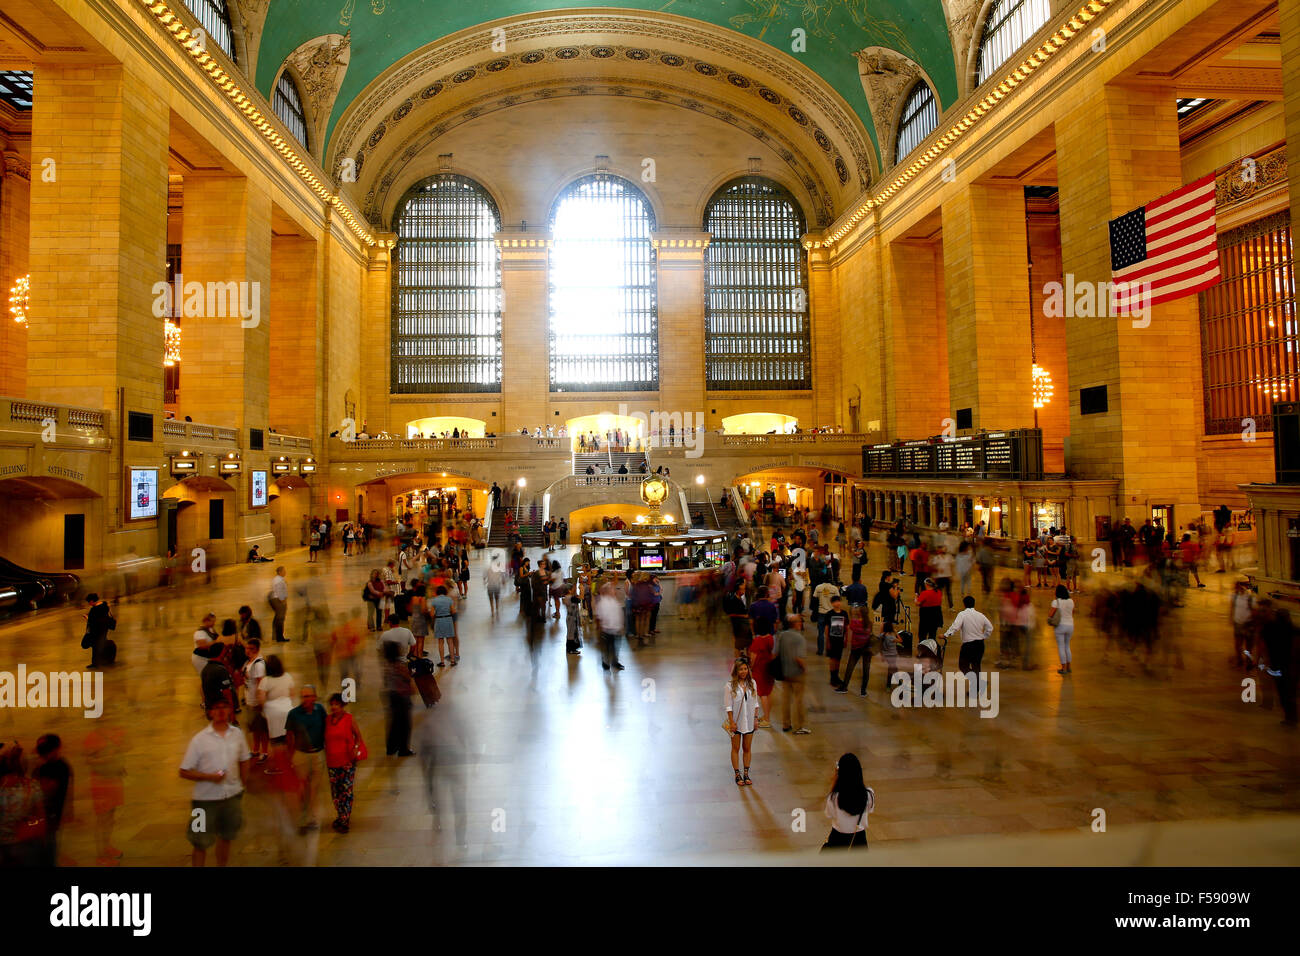 Grand Central Station in New York - Stock Image